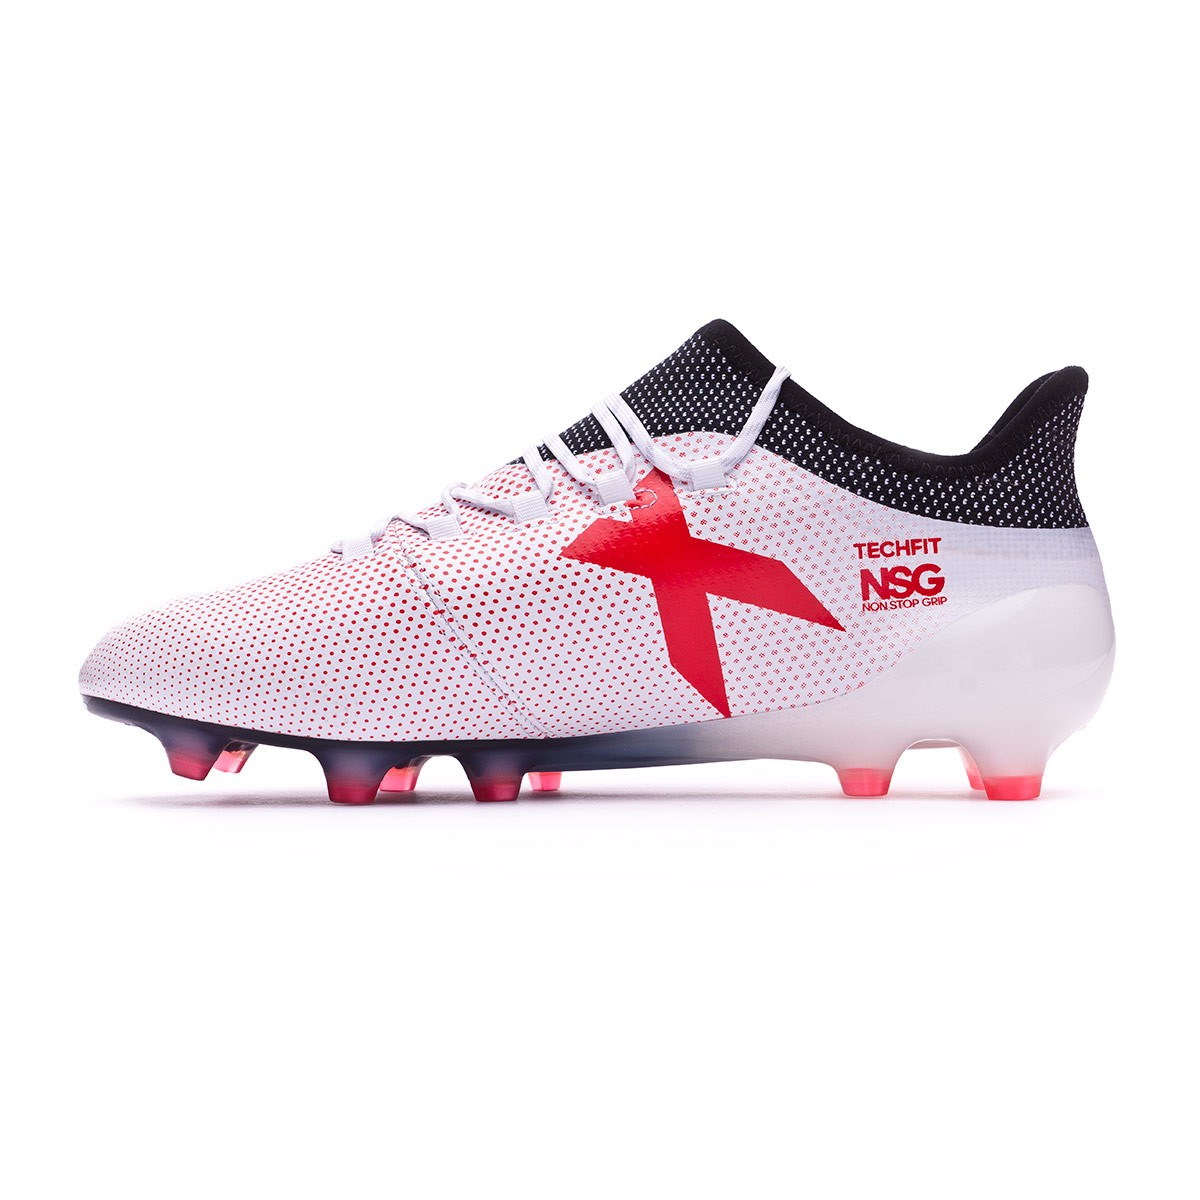 a6ea538d313 Boot adidas X 17.1 FG Grey-Real Coral-Core Black - Soloporteros es ahora  Fútbol Emotion